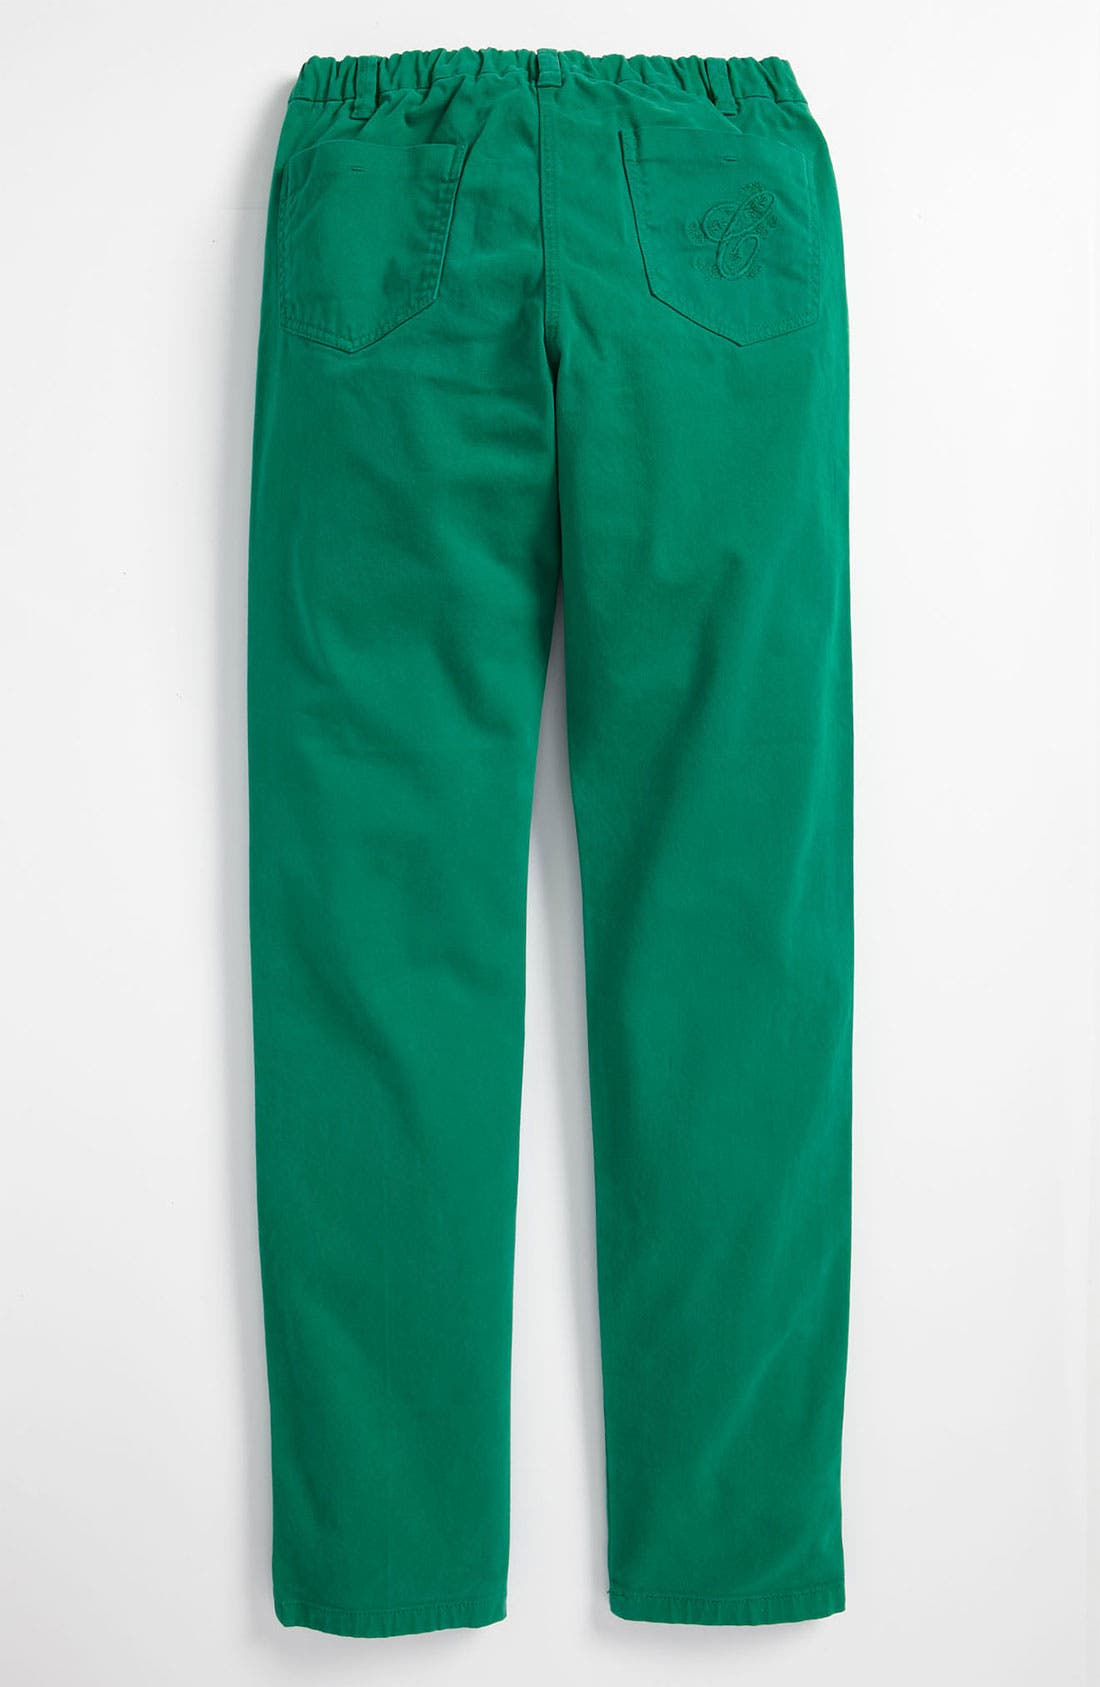 Main Image - Chloé Stretch Leggings (Little Girls & Big Girls)